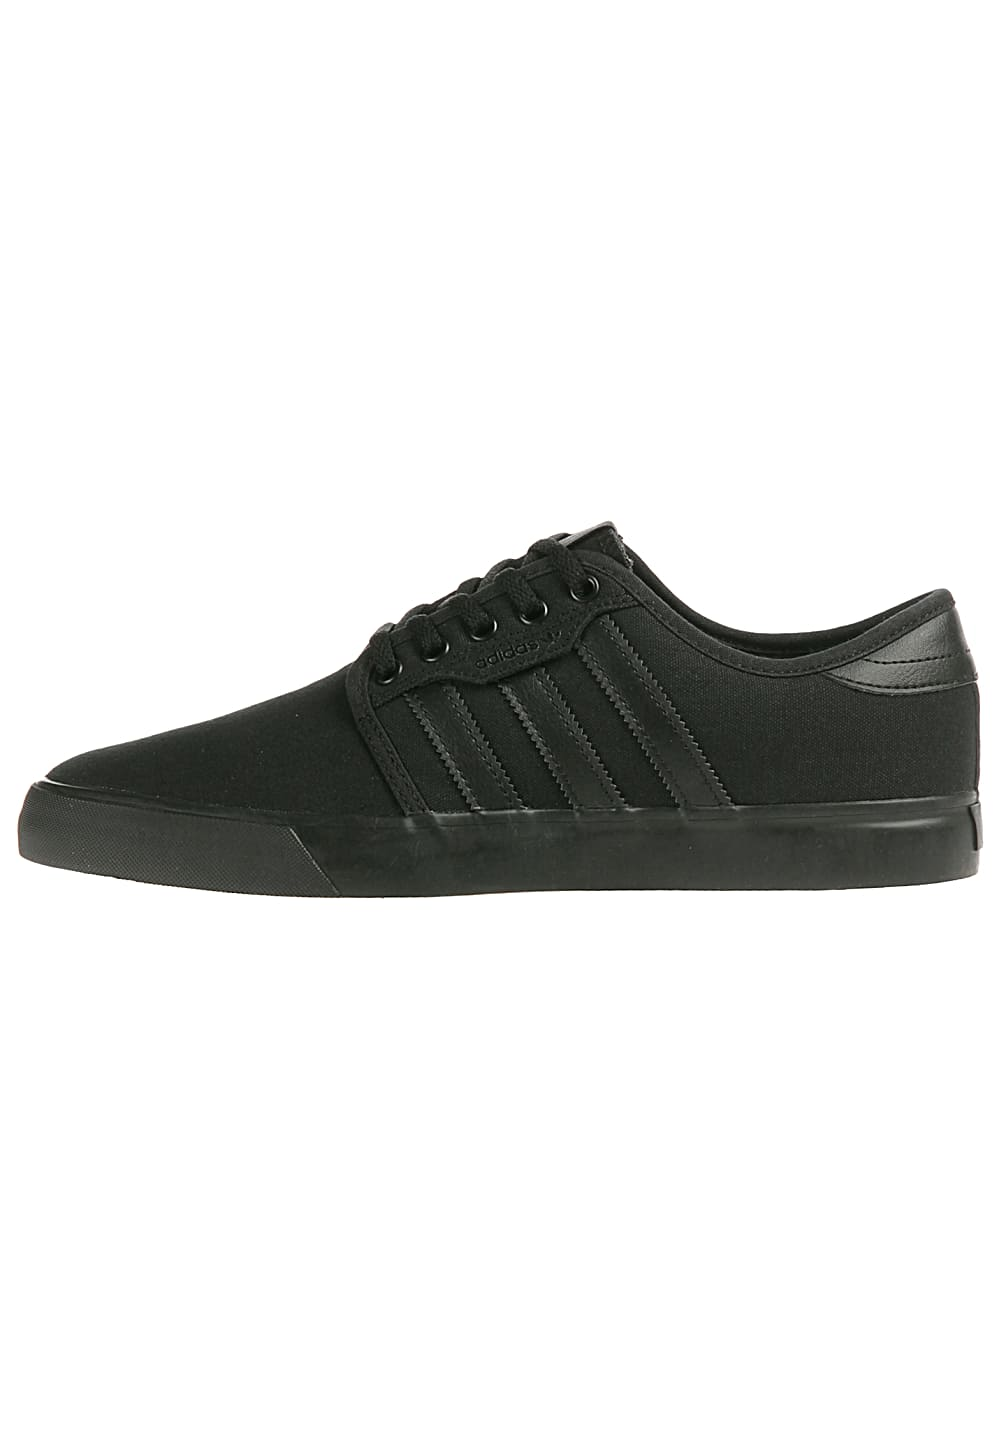 ADIDAS ORIGINALS Seeley Baskets pour Homme Noir Planet